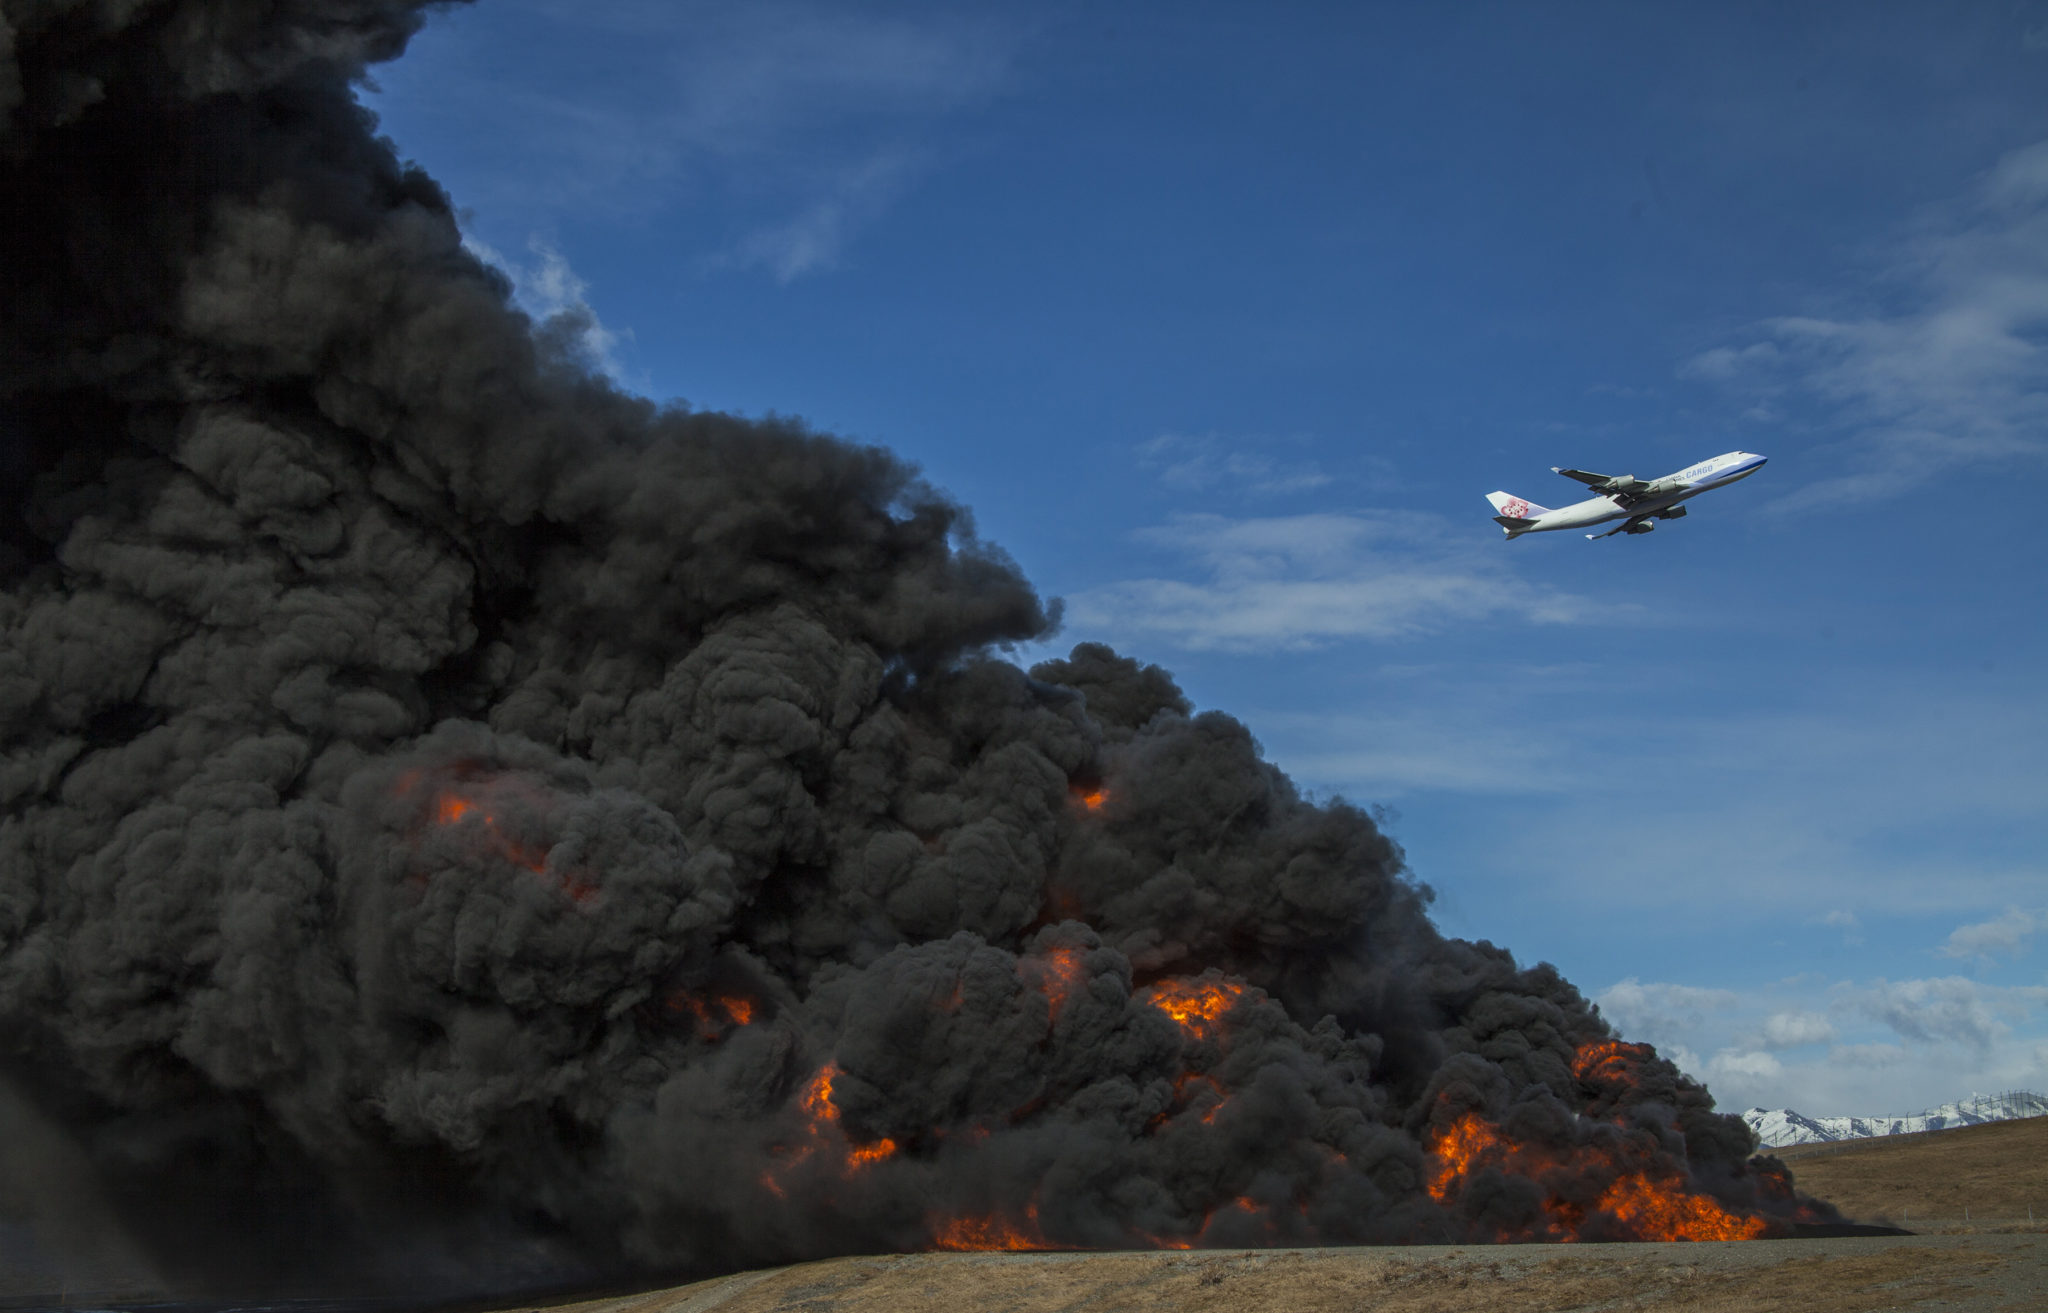 Practice Burn and Cargo Jet Images | Alaskafoto | Aircraft Photography